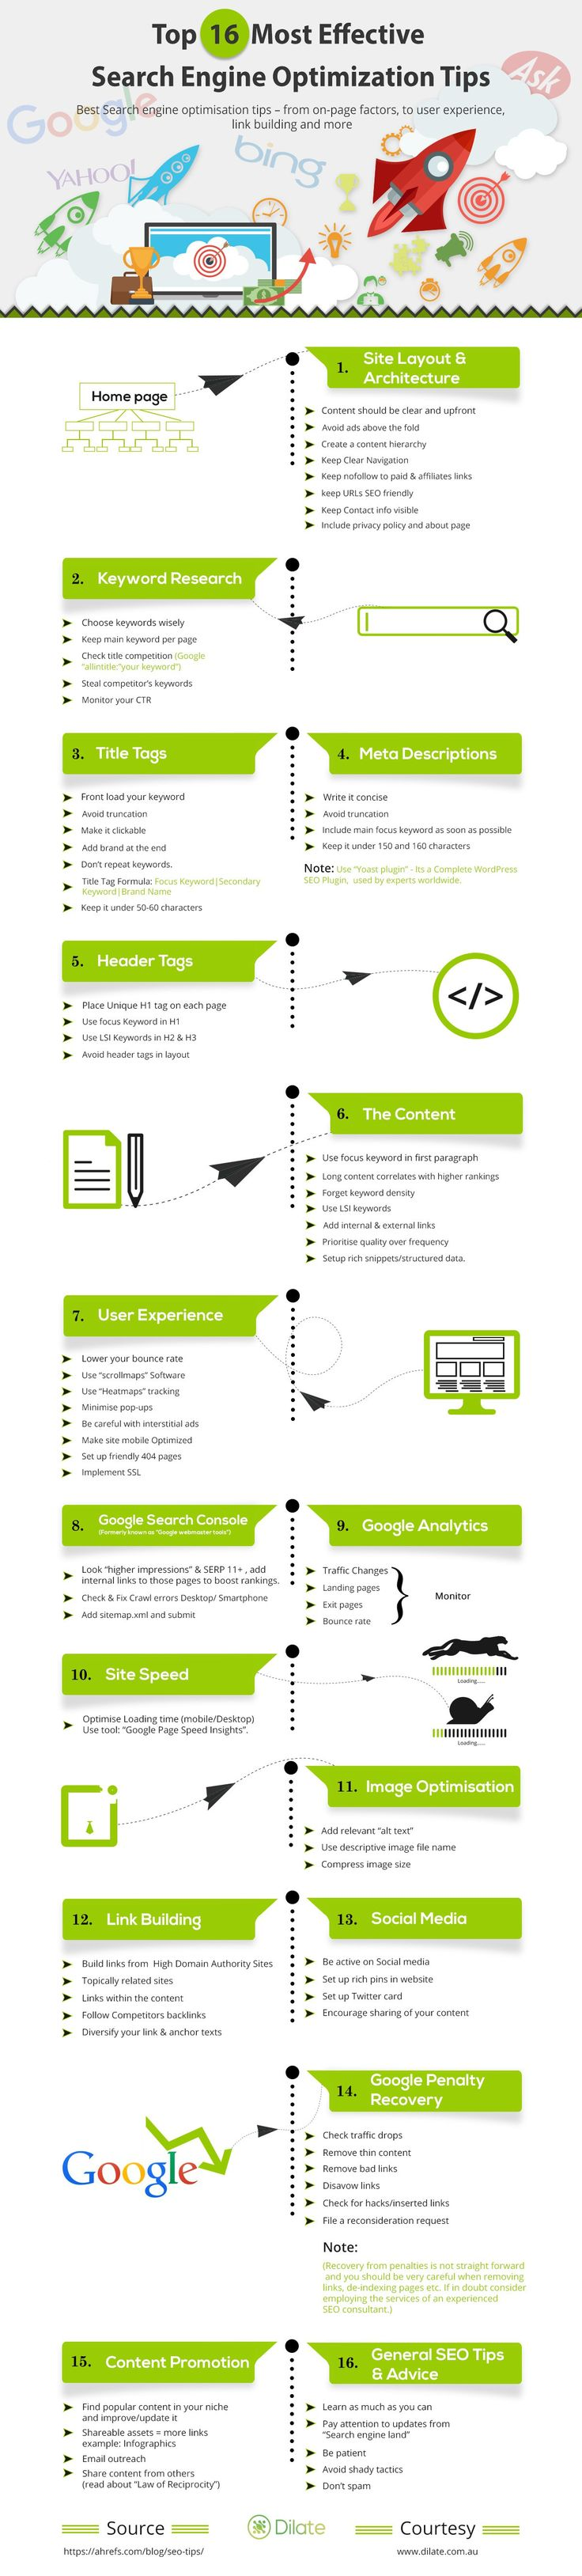 Top 16 Most Effective Search Engine Optimization Tips 2016 infographic